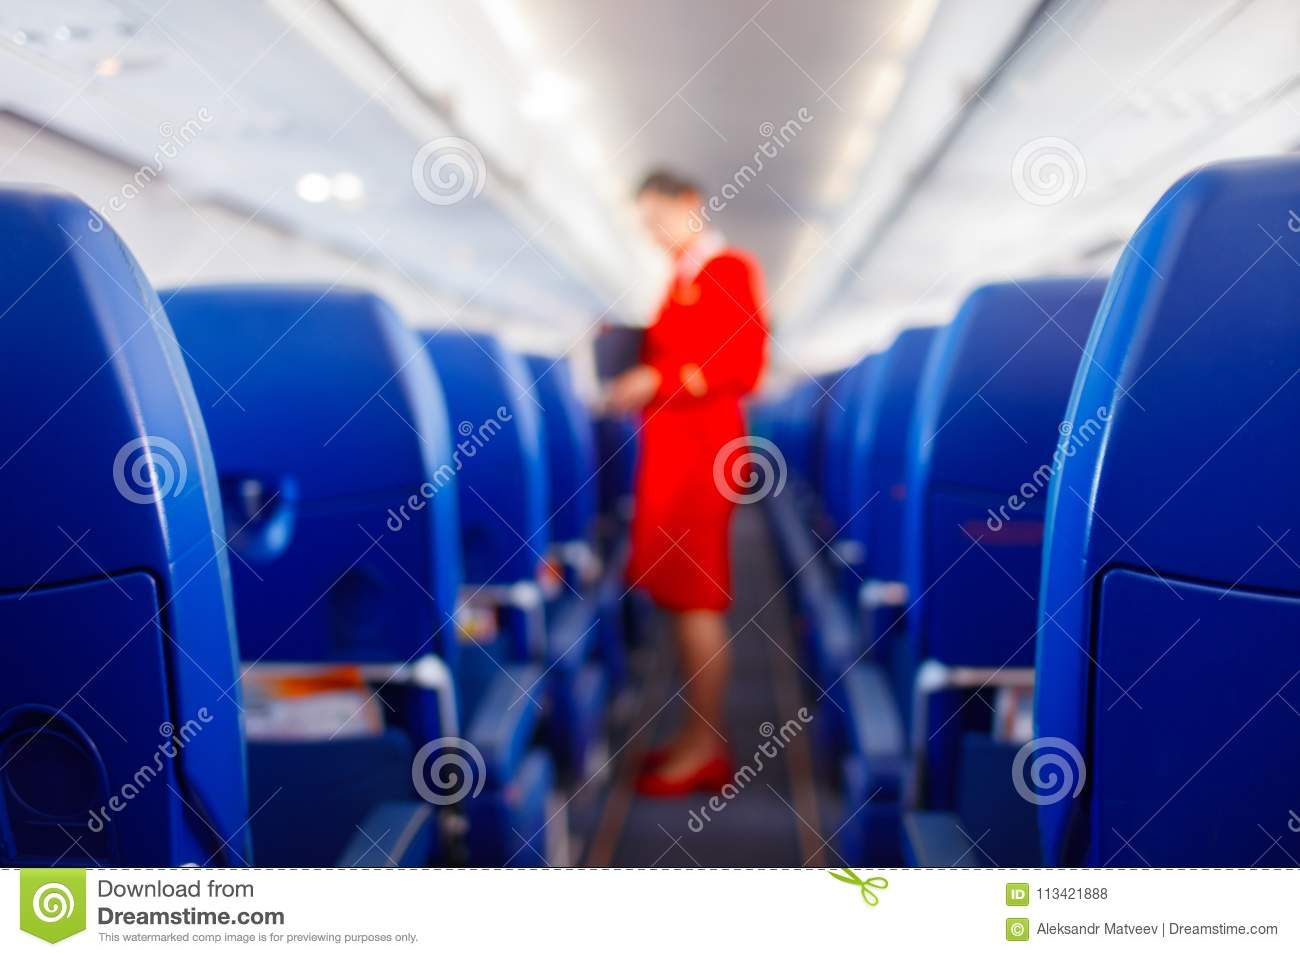 Passenger seat in airplane, Interior of airplane and stewardess background. Stewardess renders services for passengers.